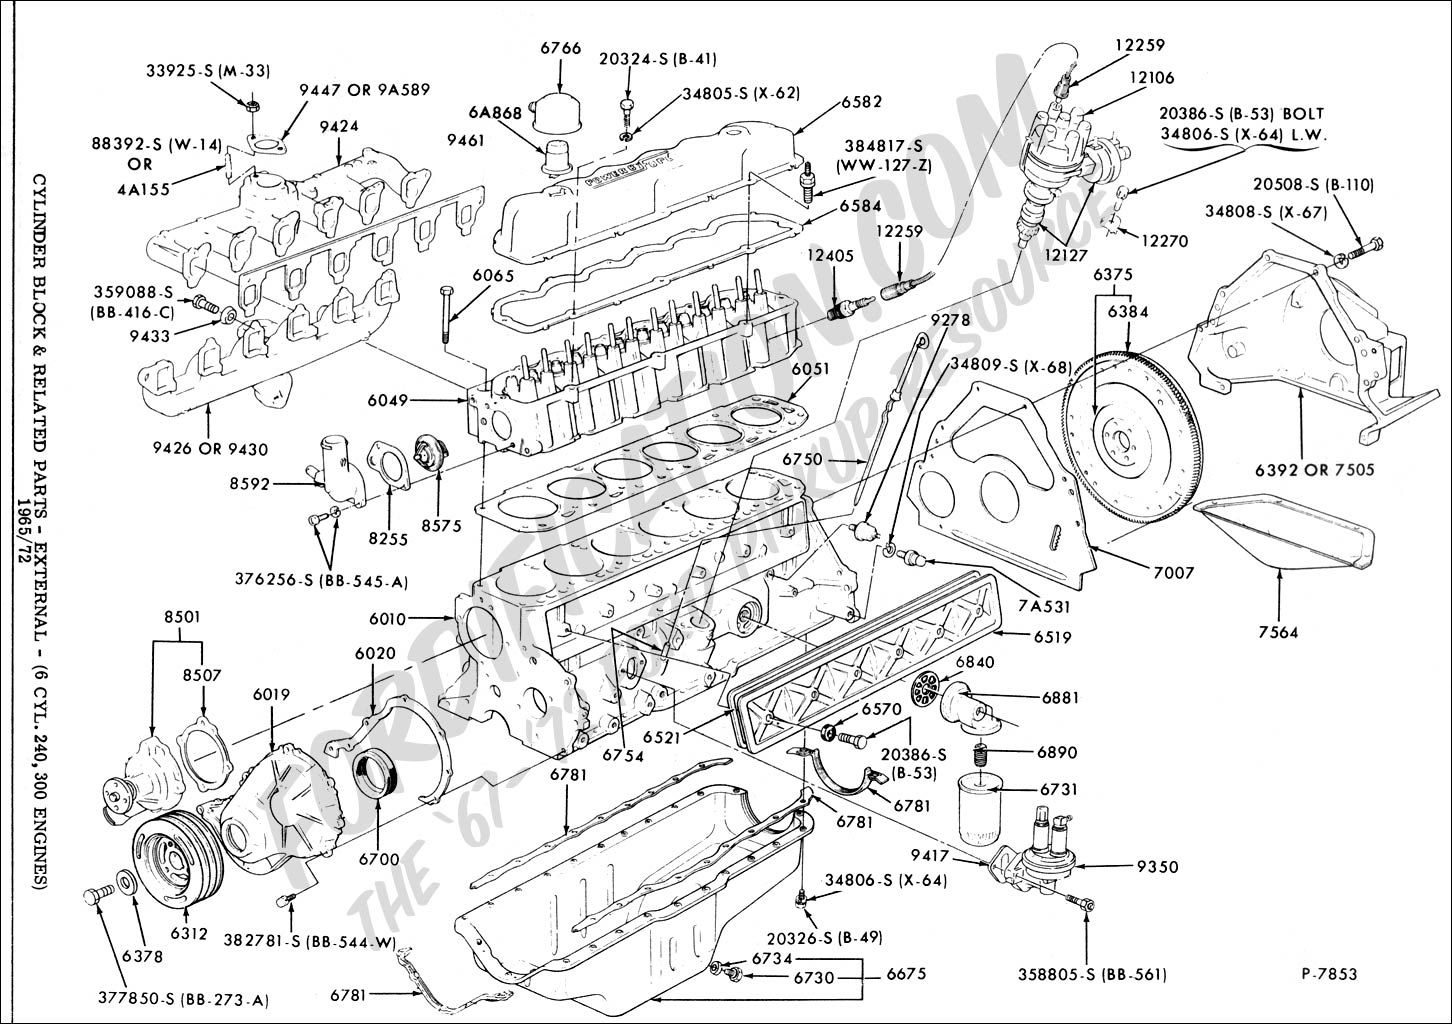 1980s Ford 5 0 Engine Diagram | Wiring Diagram